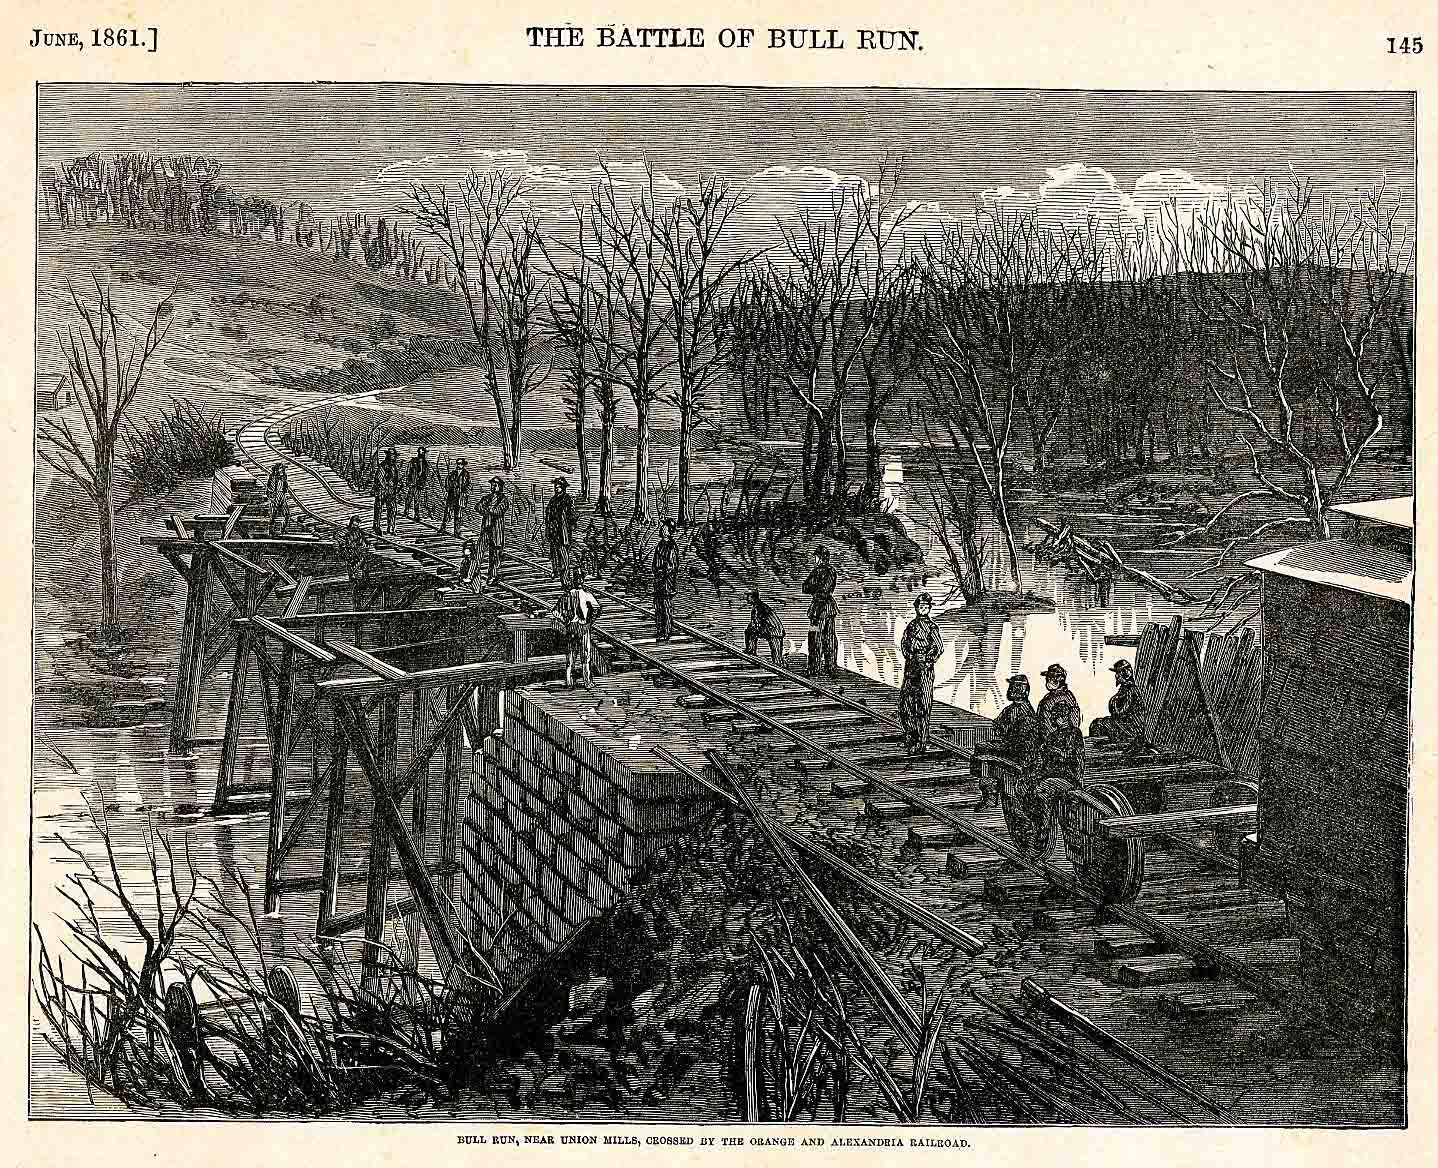 a history of the battle of bull run The first battle of bull run photos, video and first hand accounts.